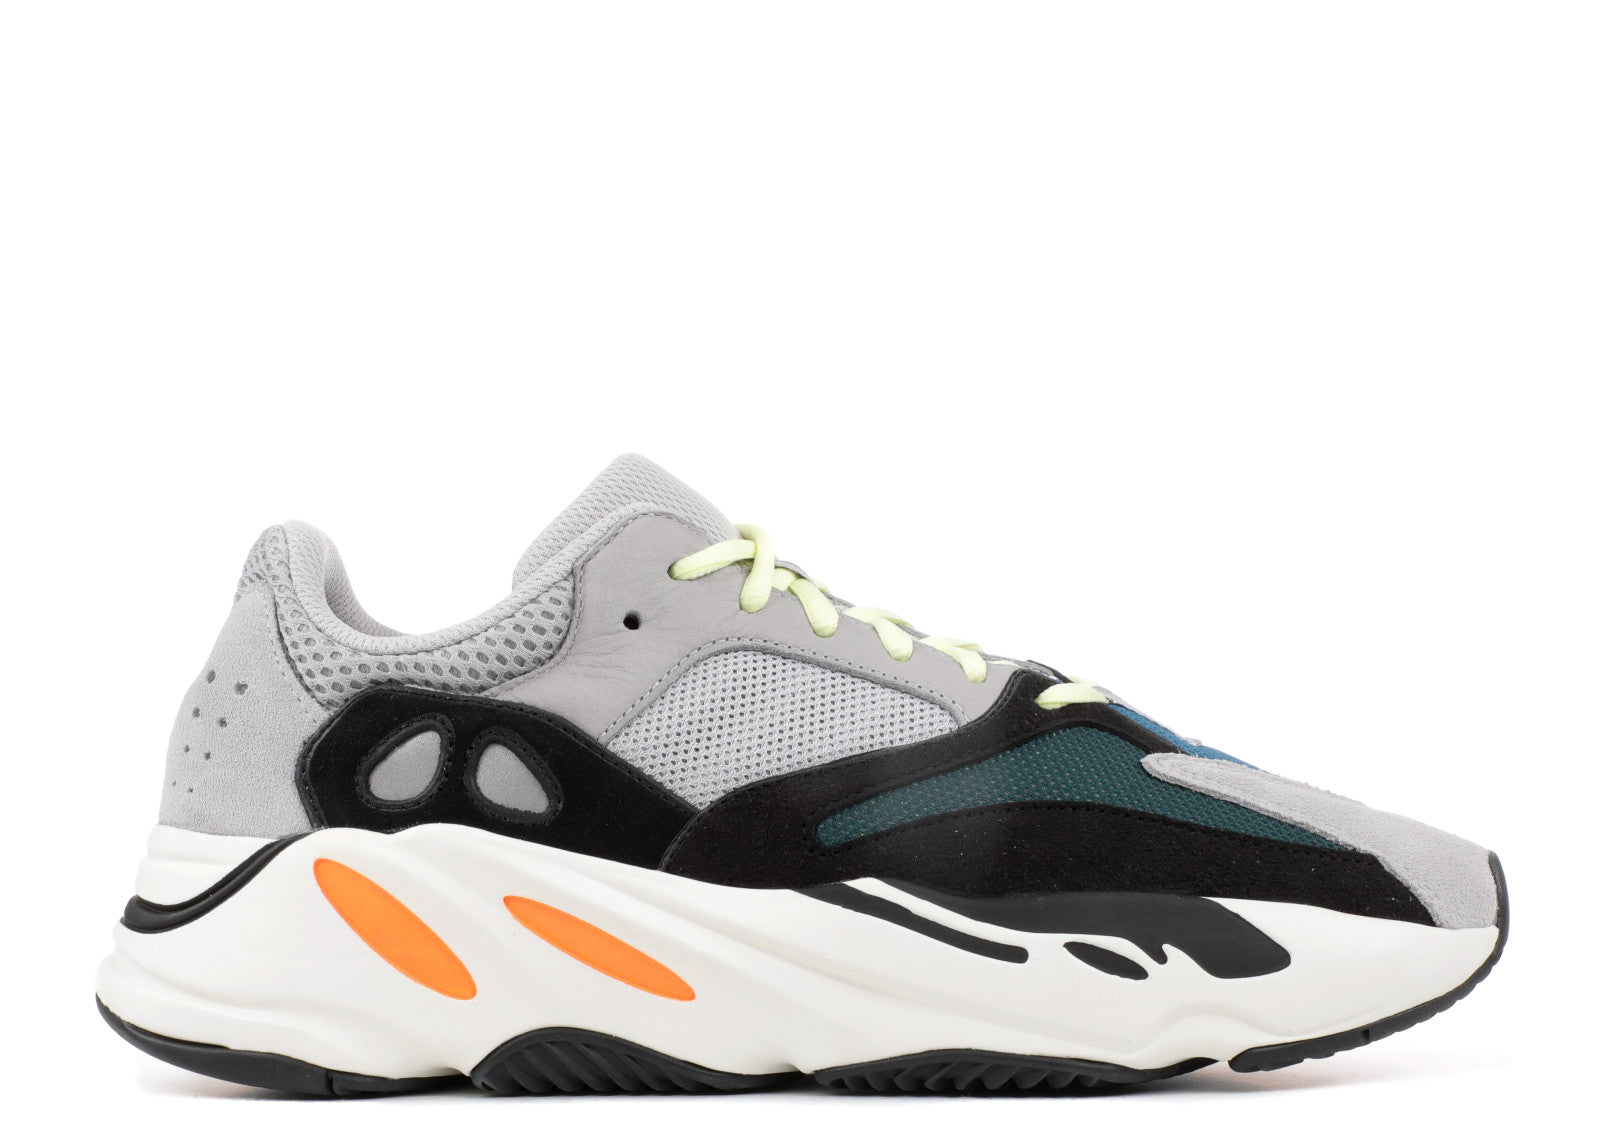 b186d44892d4f3 New adidas Yeezy Wave Runner 700